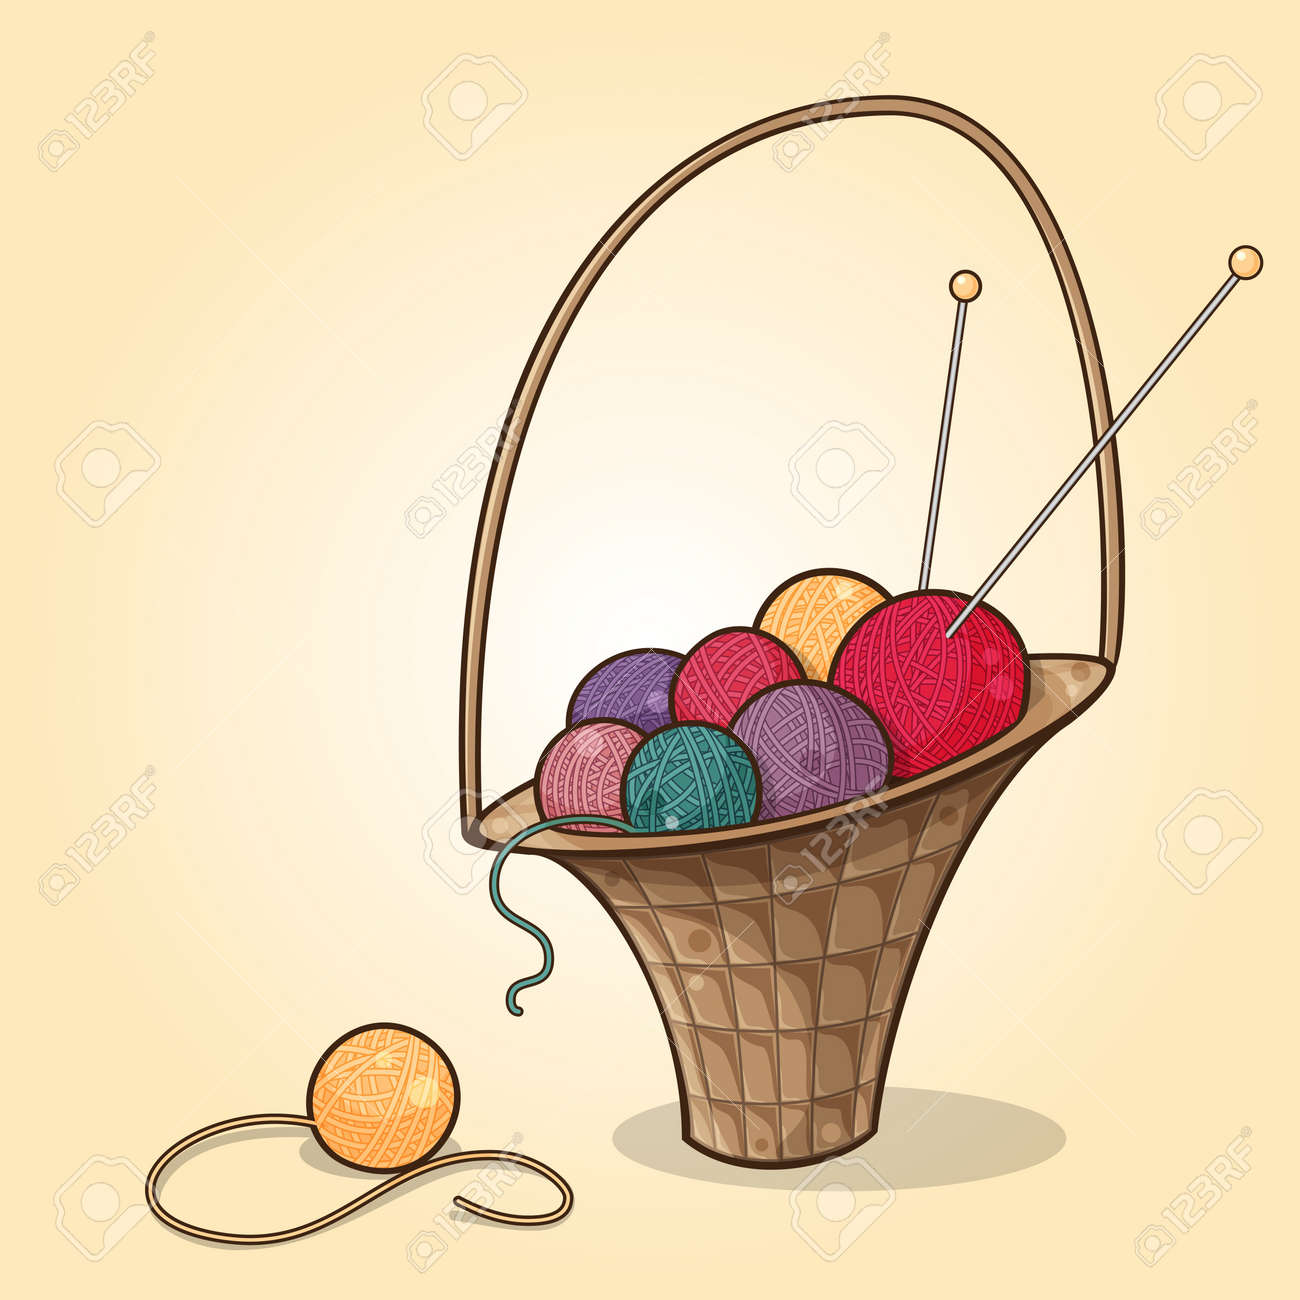 Cartoon illustration of the basket with yarn balls of different colors - 15120199